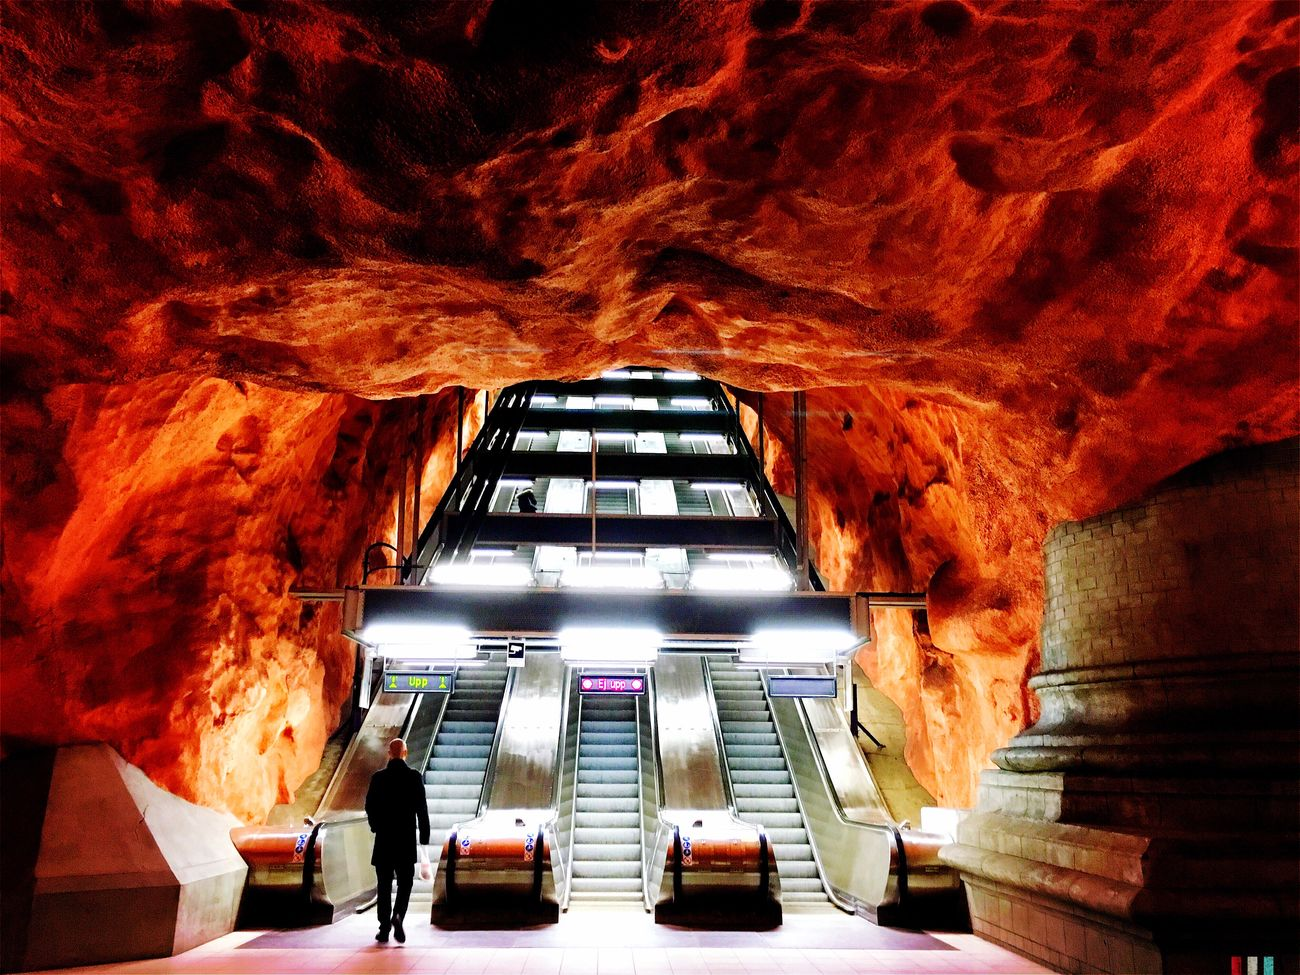 """Visual Witness Eyeem In Stockholm Hipstography ShotoniPhone6s My Own Style Of Beauty Shootermag Architecture Subway Station Vivid Stairs Red Man Public Transportation Finding New Frontiers """"Highway to Hell"""""""